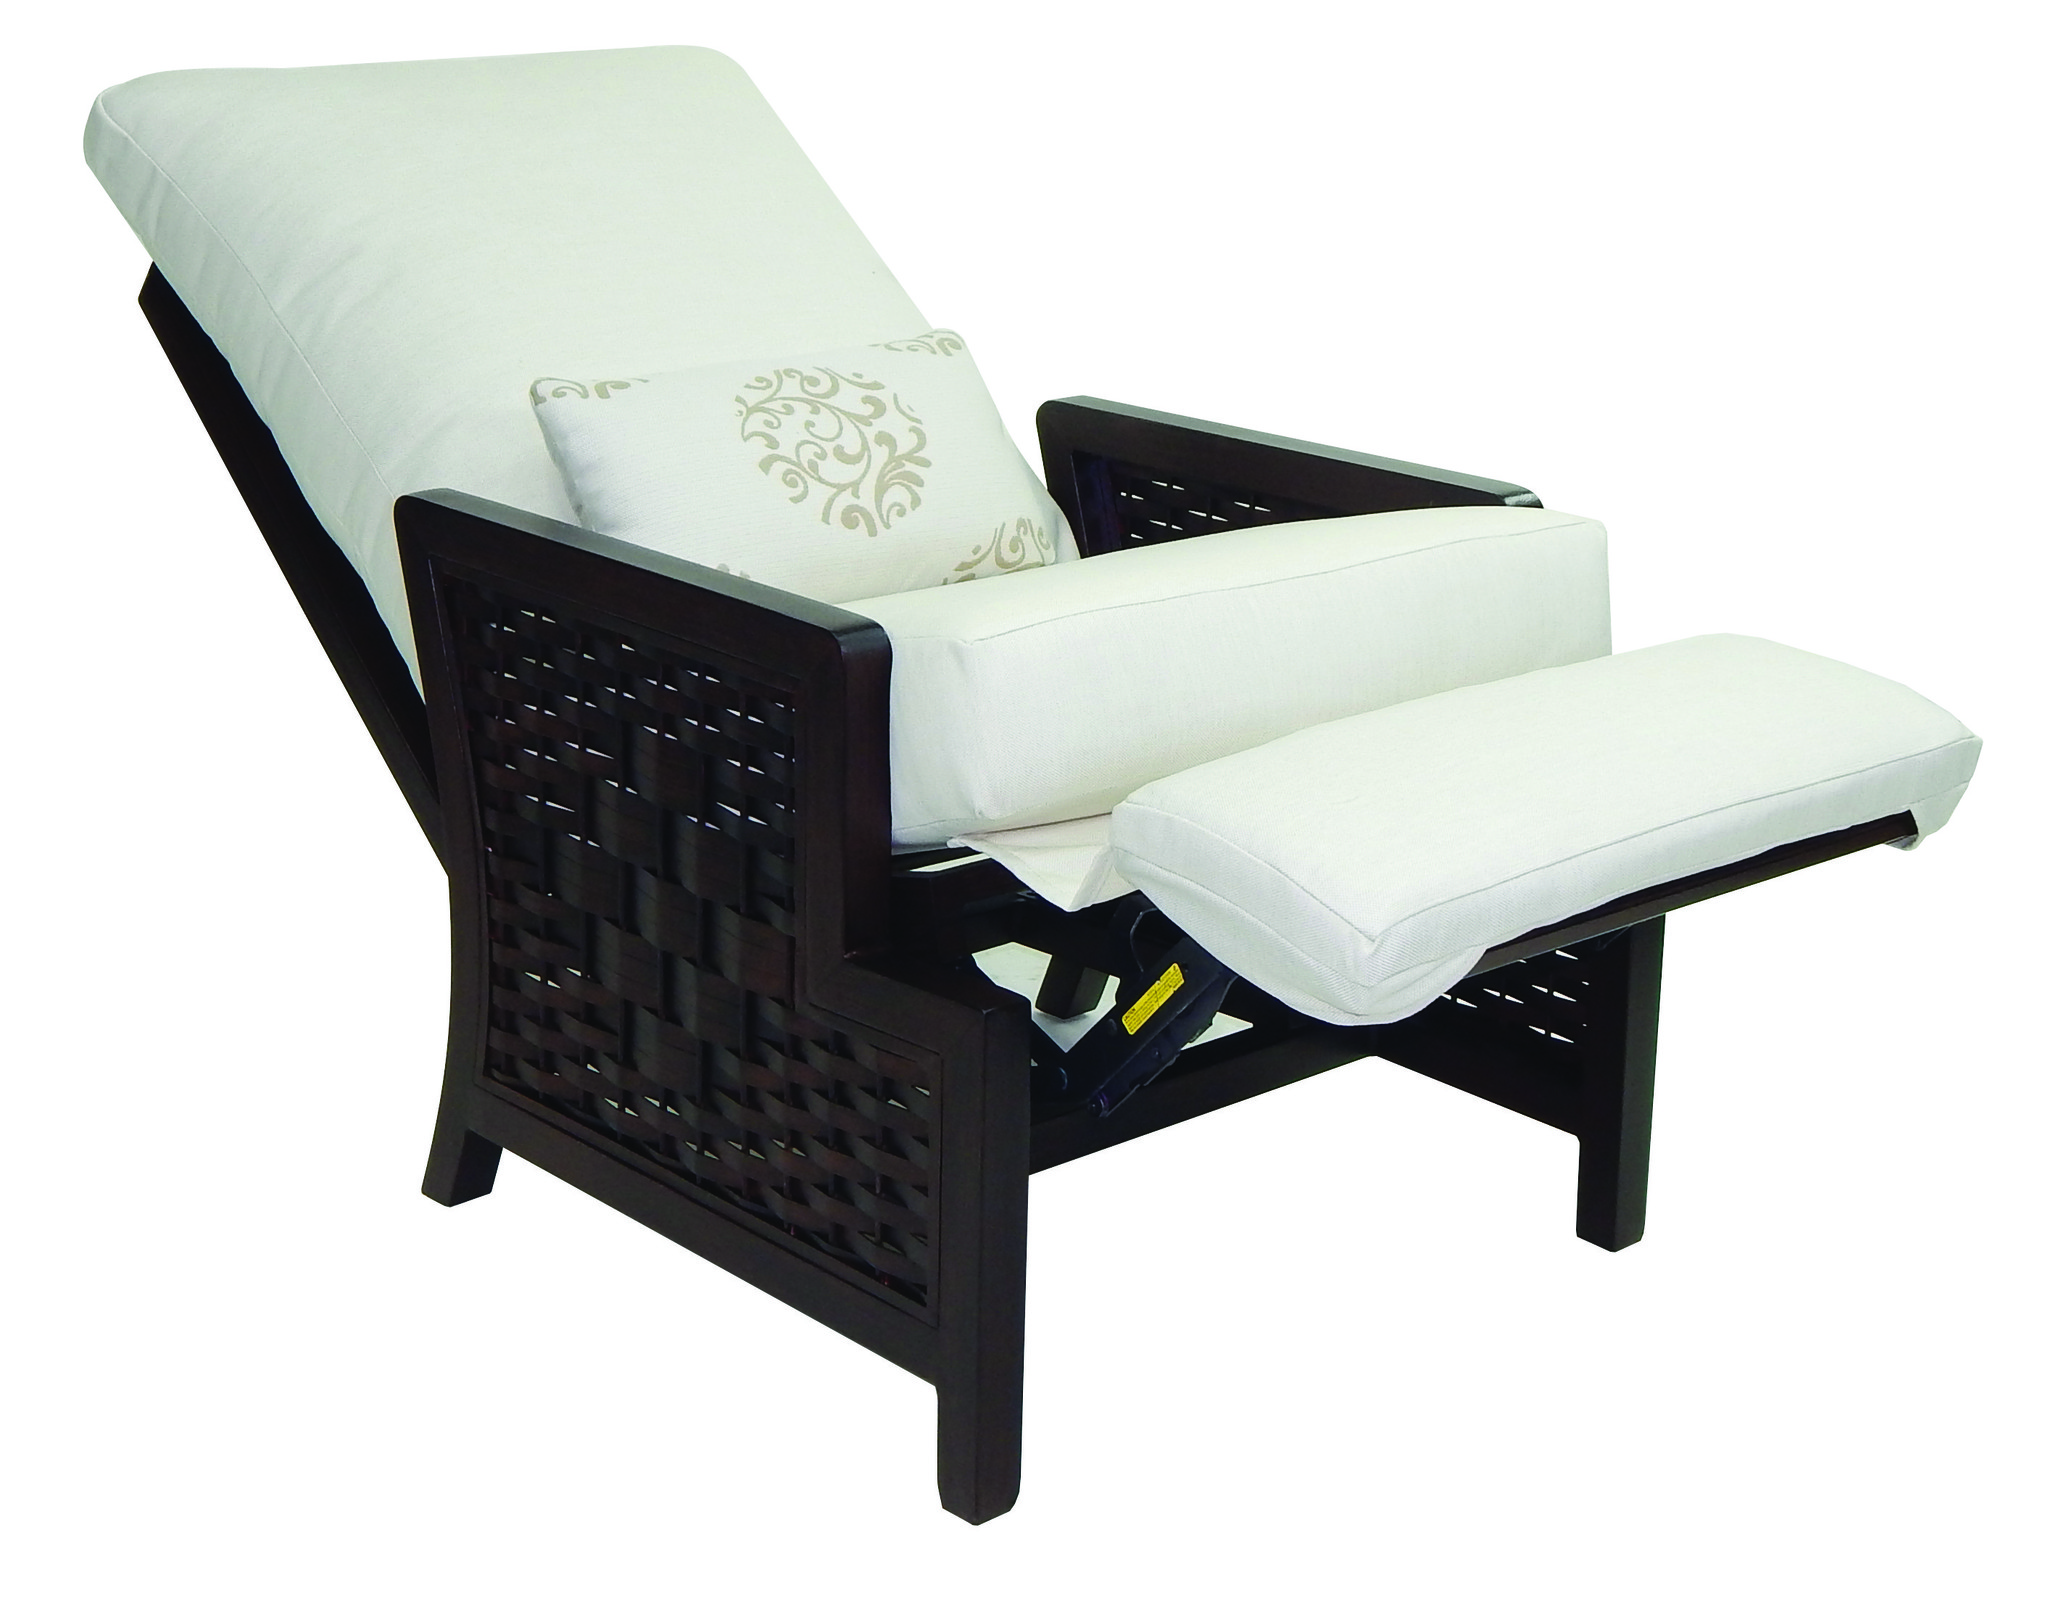 Spanish Bay Cushion 3 Position Recliner Chair W One